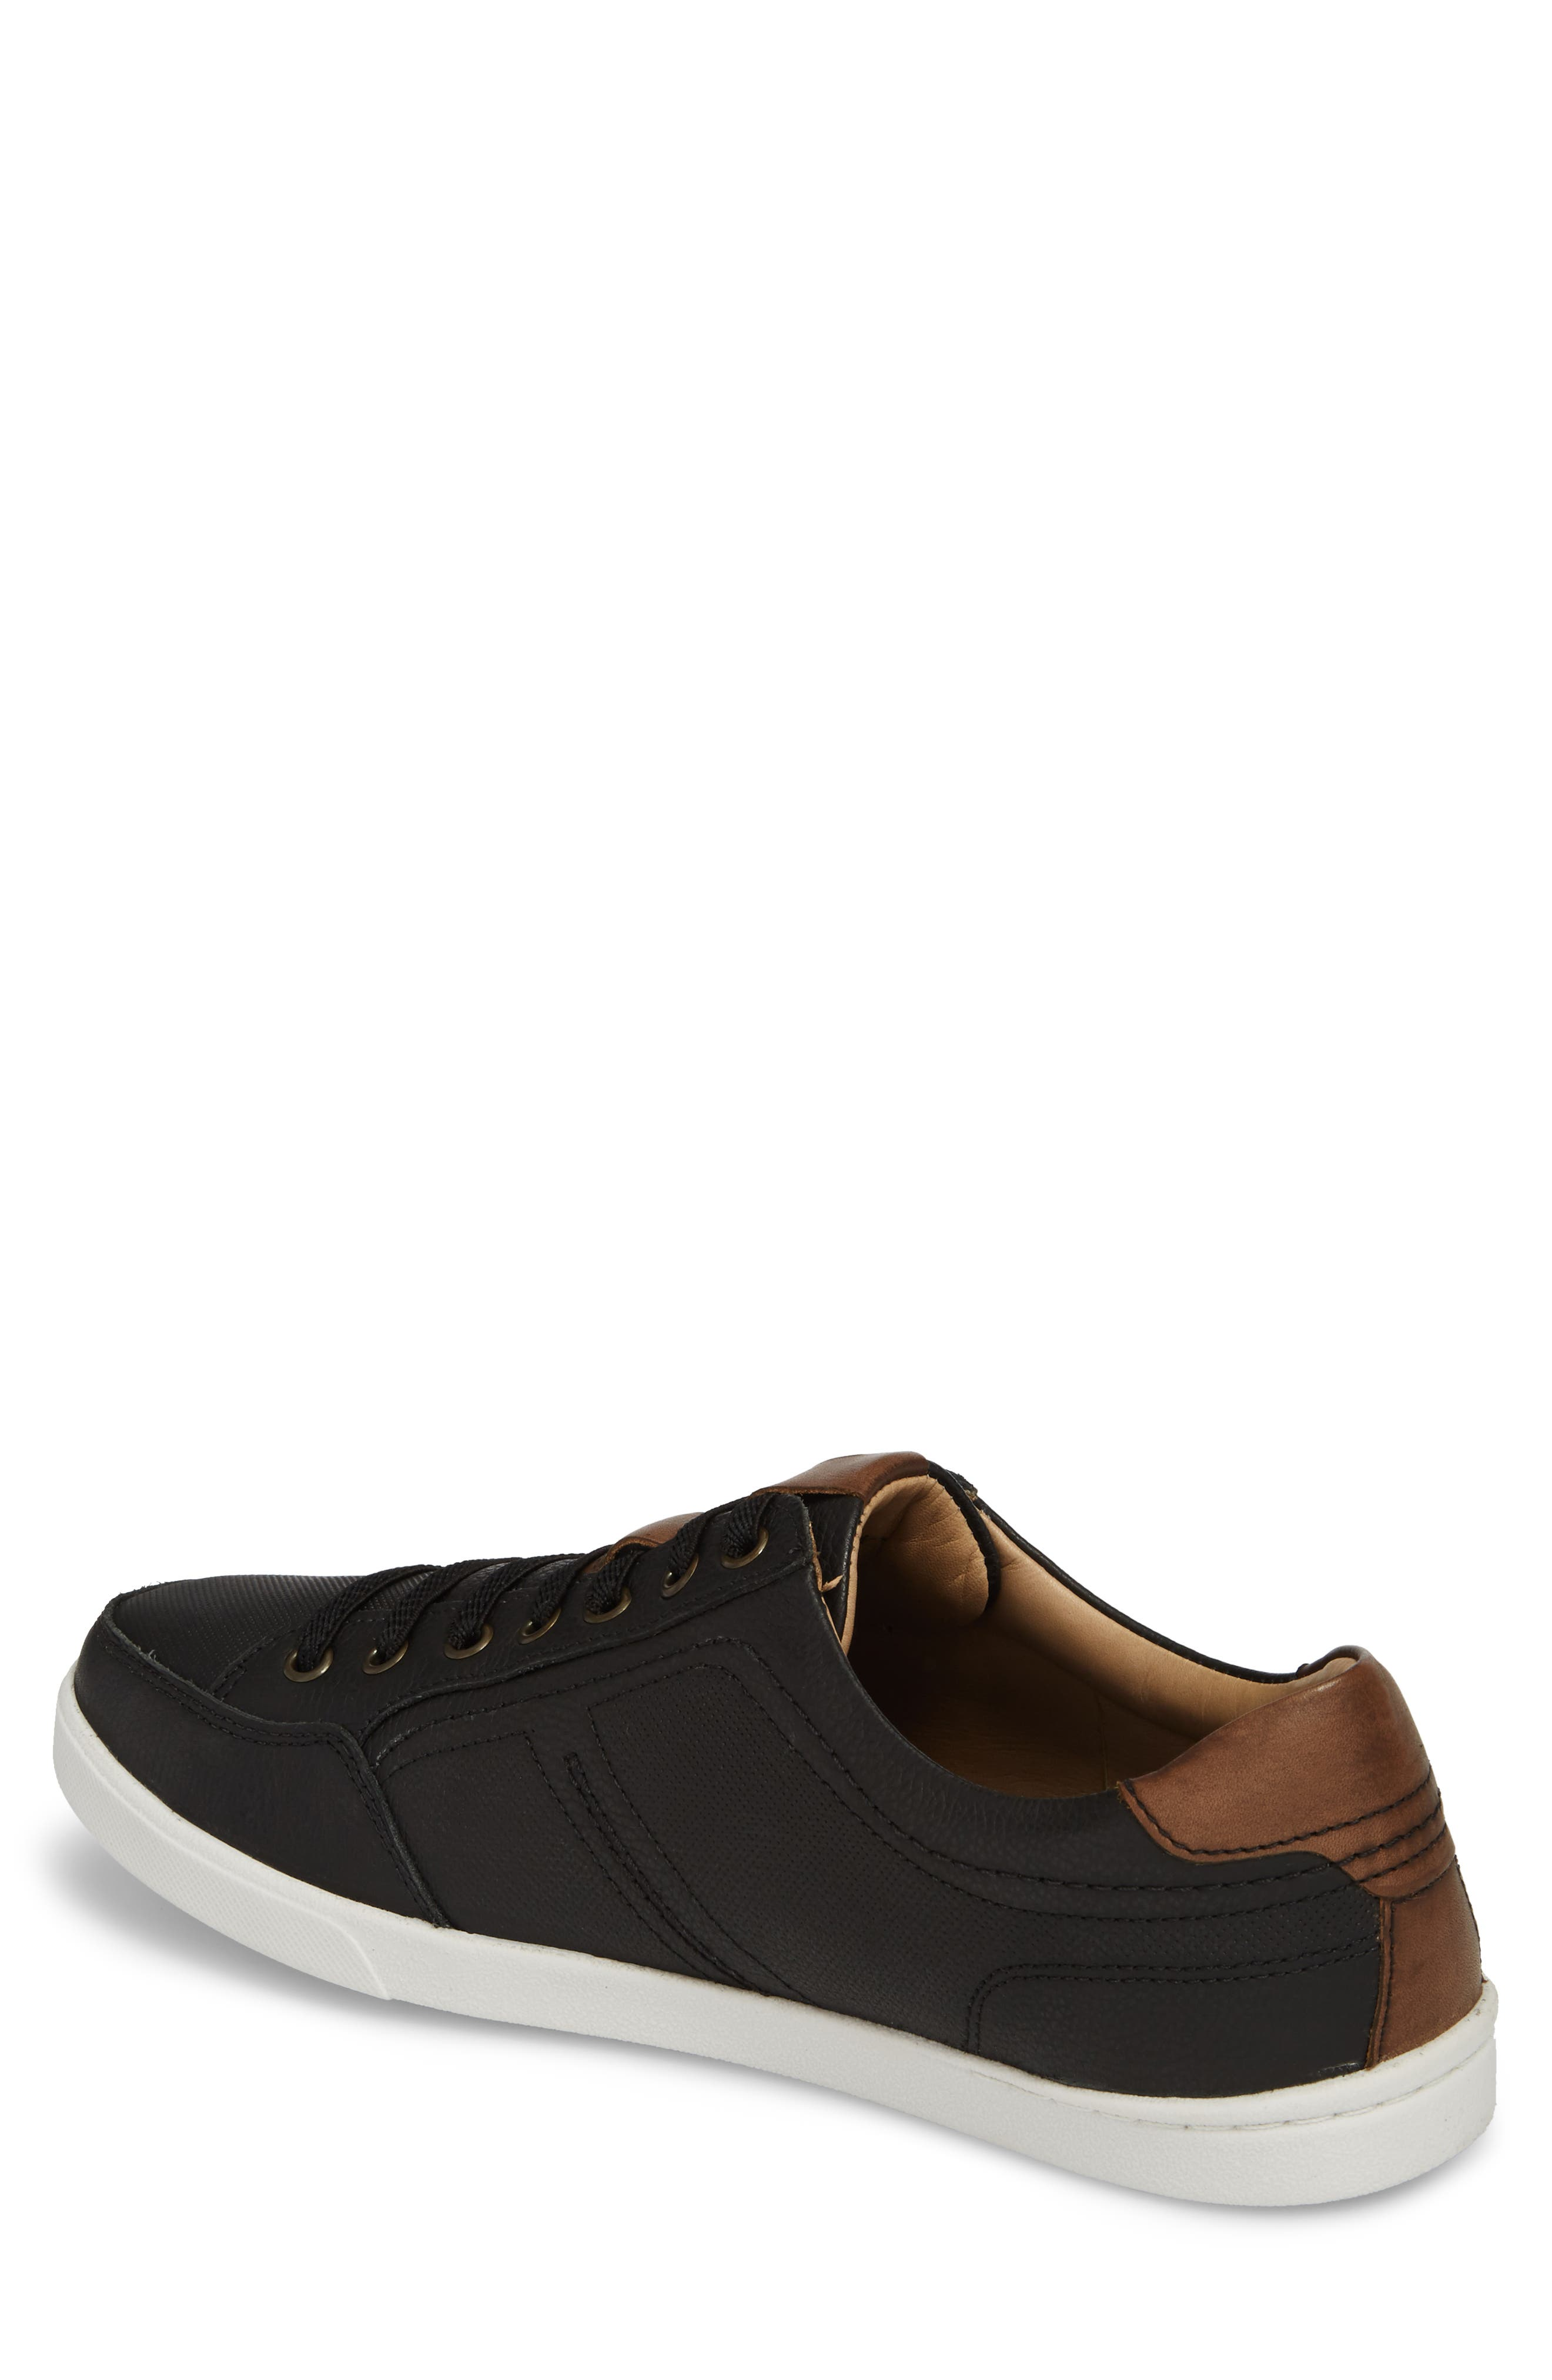 Quinton Textured Low Top Sneaker,                             Alternate thumbnail 2, color,                             BLACK LEATHER